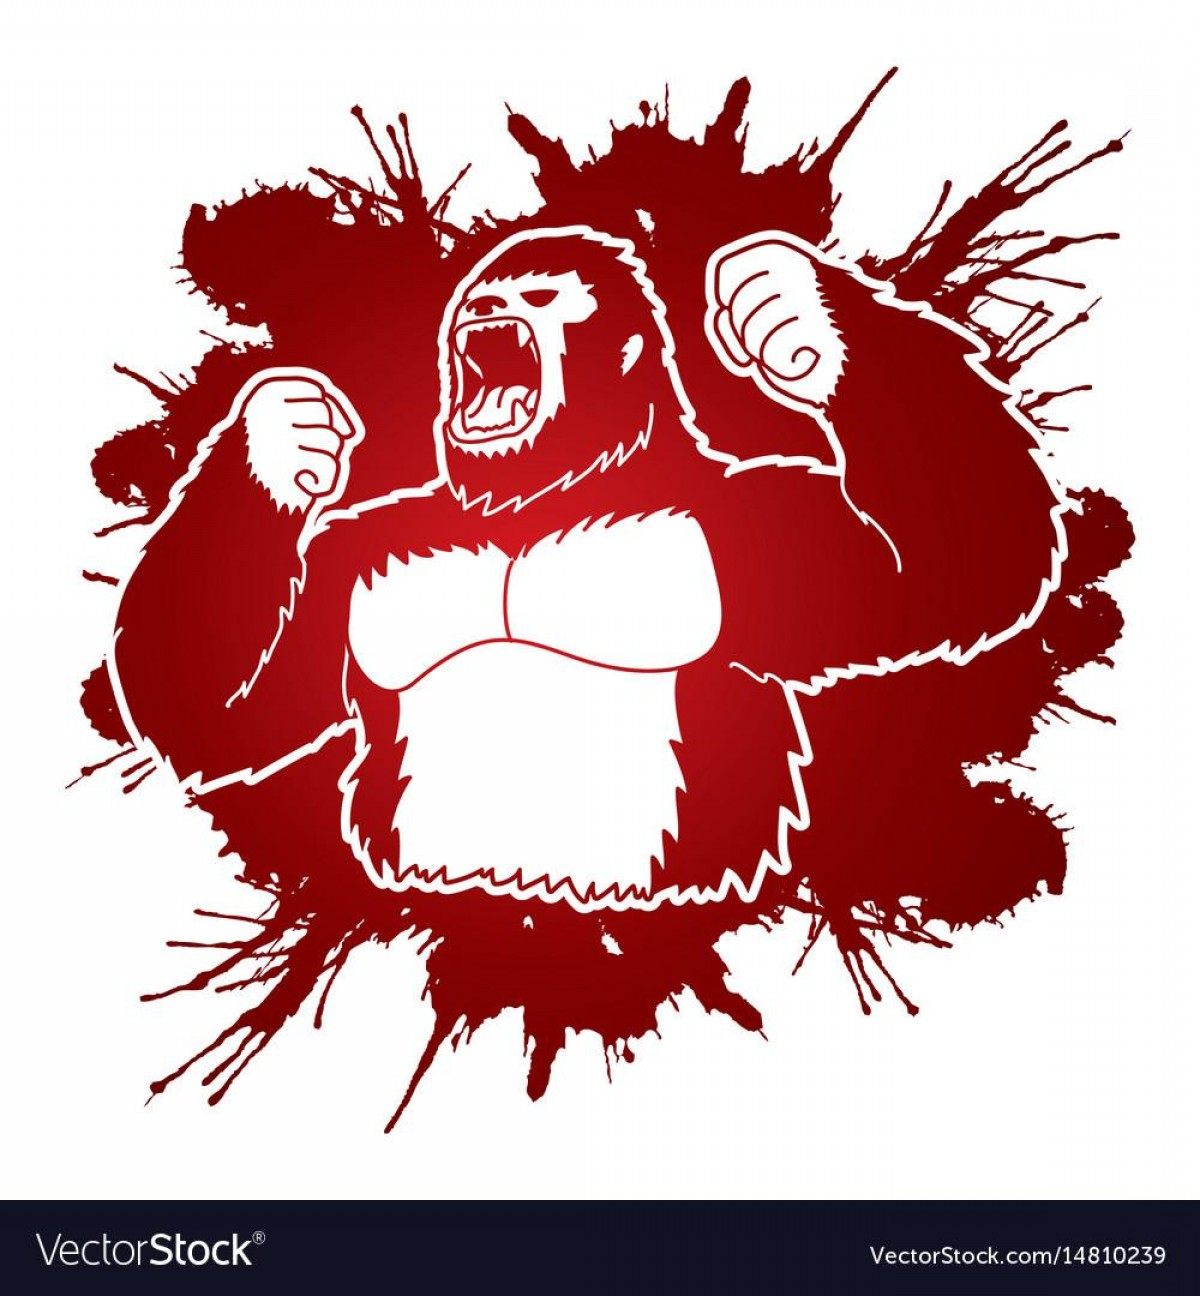 Drawings Of King Kong Vector: Hd King Kong Drawings Vector Pictures